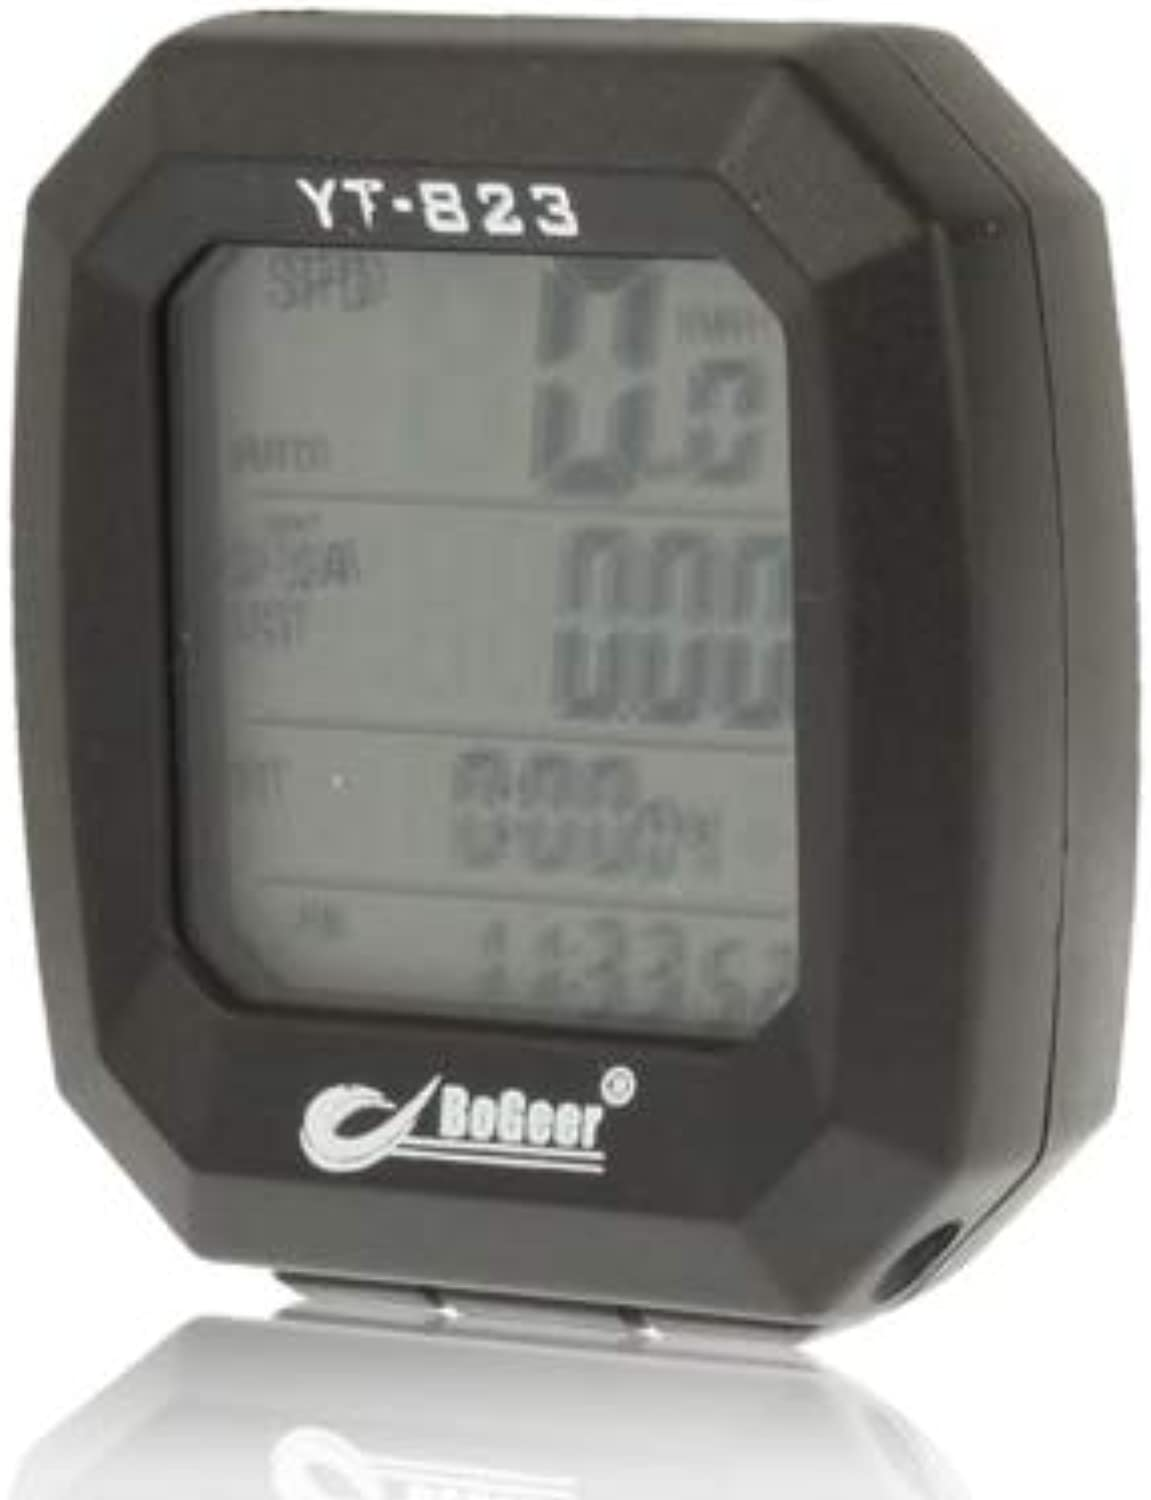 Cycling Equipment LCD Electronic Bicycle Speedometer, Digital LCD Display Size  5x4.5x2.5cm. Safe and Practical